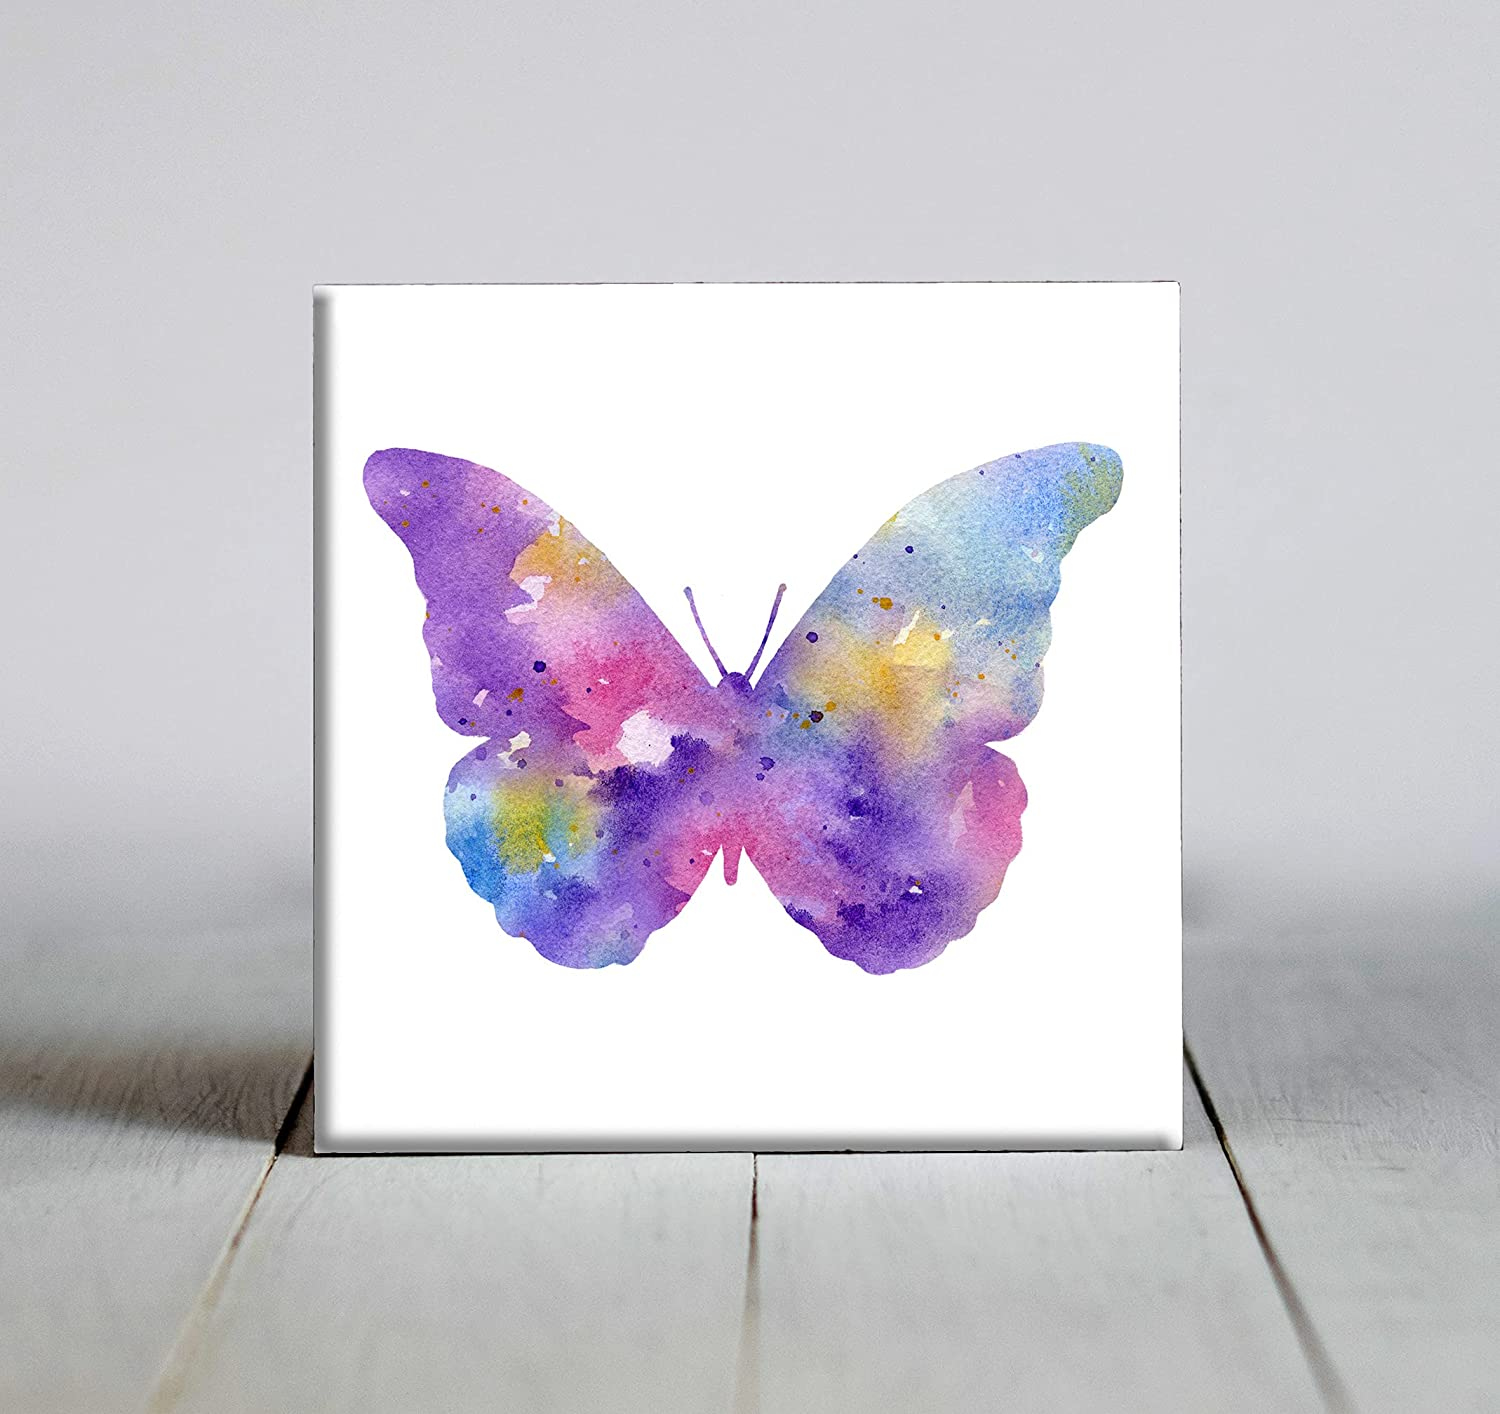 Pastel Abstract Butterfly 2021 new Watercolor Attention brand Art 6 Tile X Decorative